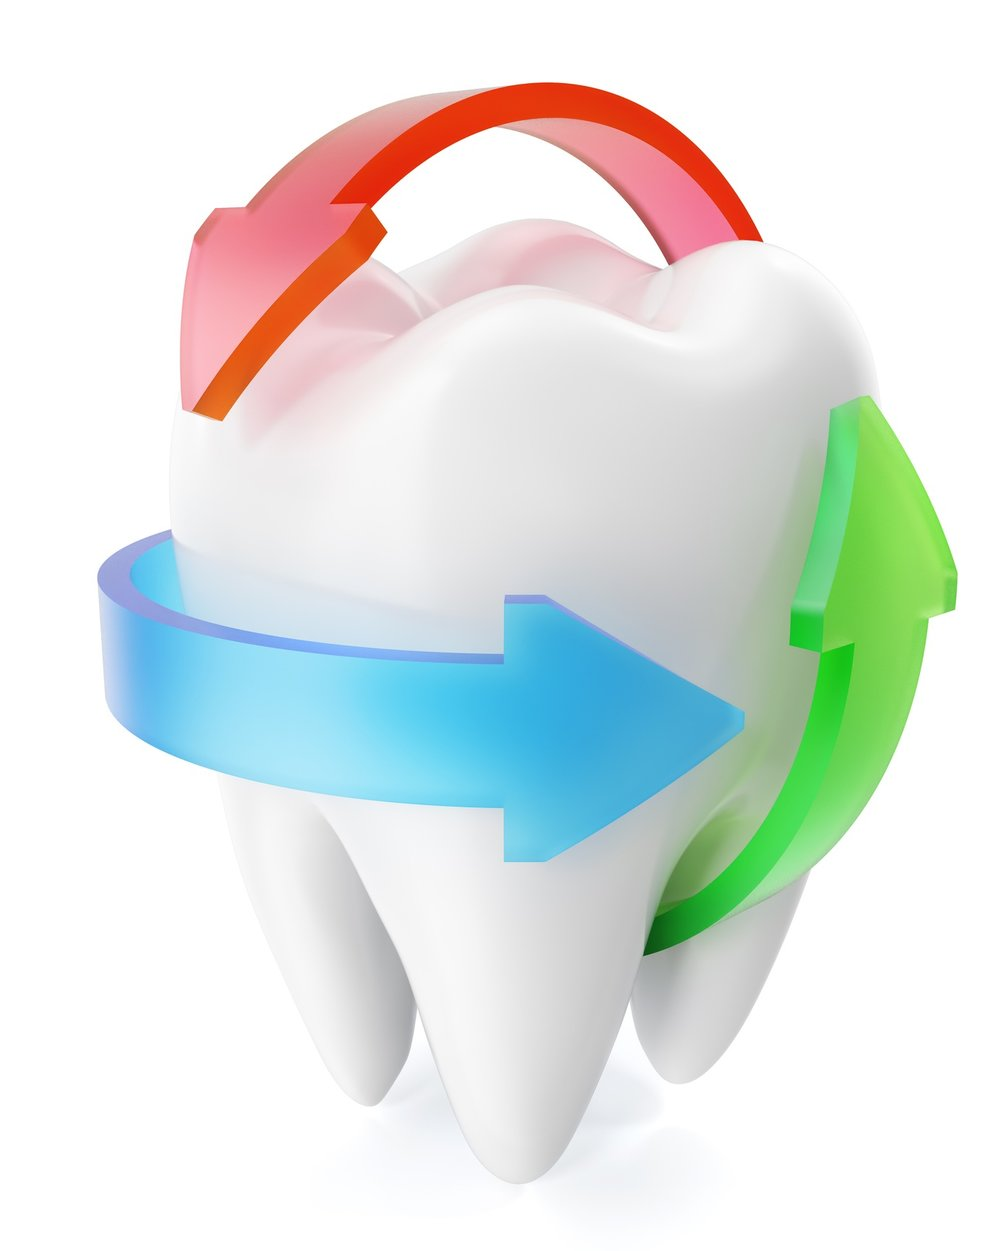 Tooth Decay - Tooth decay, also known as cavities or caries, is unfortunately still prevalent. Tooth decay occurs when long-standing bacteria coated on tooth surfaces (known as dental plaque) are exposed to sugar. The sugar is used by certain bacteria in plaque to produce acids which dissolve minerals from the tooth which ultimately weakens them. Eventually, after enough mineral has been dissolved away the surface of the tooth breaks resulting in cavities. Once a hole forms, it becomes challenging to clean the area effectively to remove plaque and so the cavity can get bigger and bigger eventually resulting in pain and if left will result in the tooth losing its blood supply and the nerve dying. Other foods such as processed white bread, starchy cereals and pasta can also result in tooth decay because a digestive enzyme present in saliva can break down these processed foods very quickly to produce sugars that dental plaque can thrive from.Now for the good newsTooth decay is preventable and in the early stages, even reversible. The process by which mineral is dissolved away can be reversed by your own saliva. This yo-yoing of the mineral in and out of the tooth is perfectly normal, but if there is a net loss of minerals a cavity eventually forms. It does, however, take longer for the minerals to be driven back into the tooth compared to dissolving it away, but it is doable. All you have to do is allow your saliva enough time to do it, and that means not having anything sugary (or food which is processed) for 3-4 hours after your first sugar hit, but this very much depends on the quality of your saliva. If your saliva is great at neutralising acids, then the time period for mineral to be put back is short. If, however, its of poor quality, it may take an age to neutralise and so you are at higher risk of tooth decay. I usually advise my patients to restrict their sugar intake to meal times only as most foods from supermarkets contain hidden sugars, even the savoury on